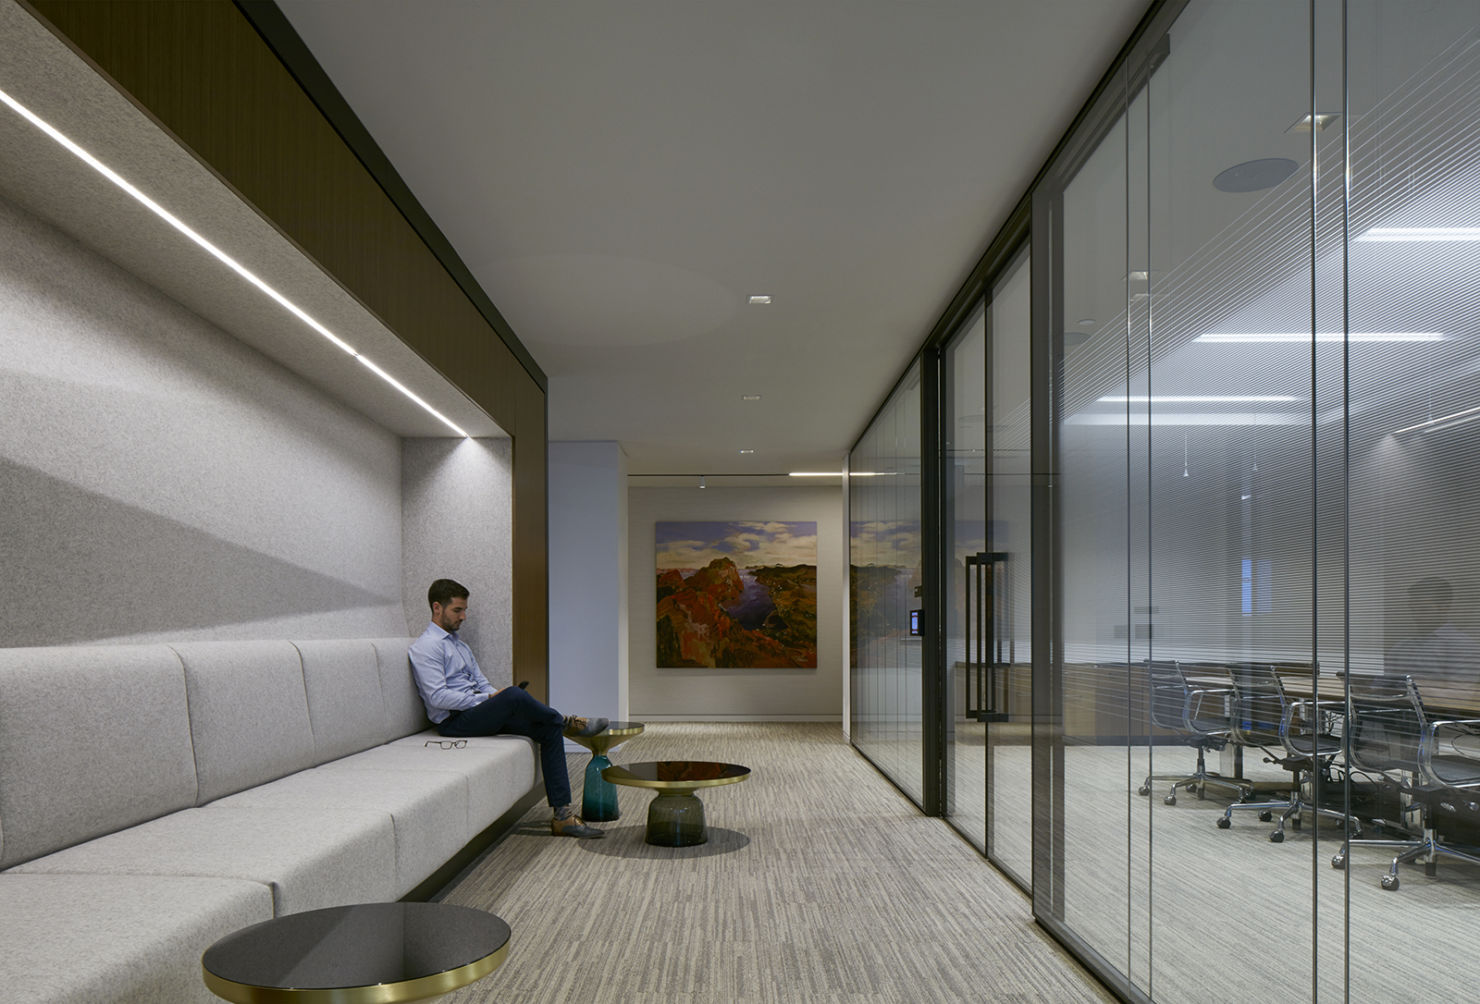 Deloitte's Toronto Office uses meeting rooms booking software to better manage their space